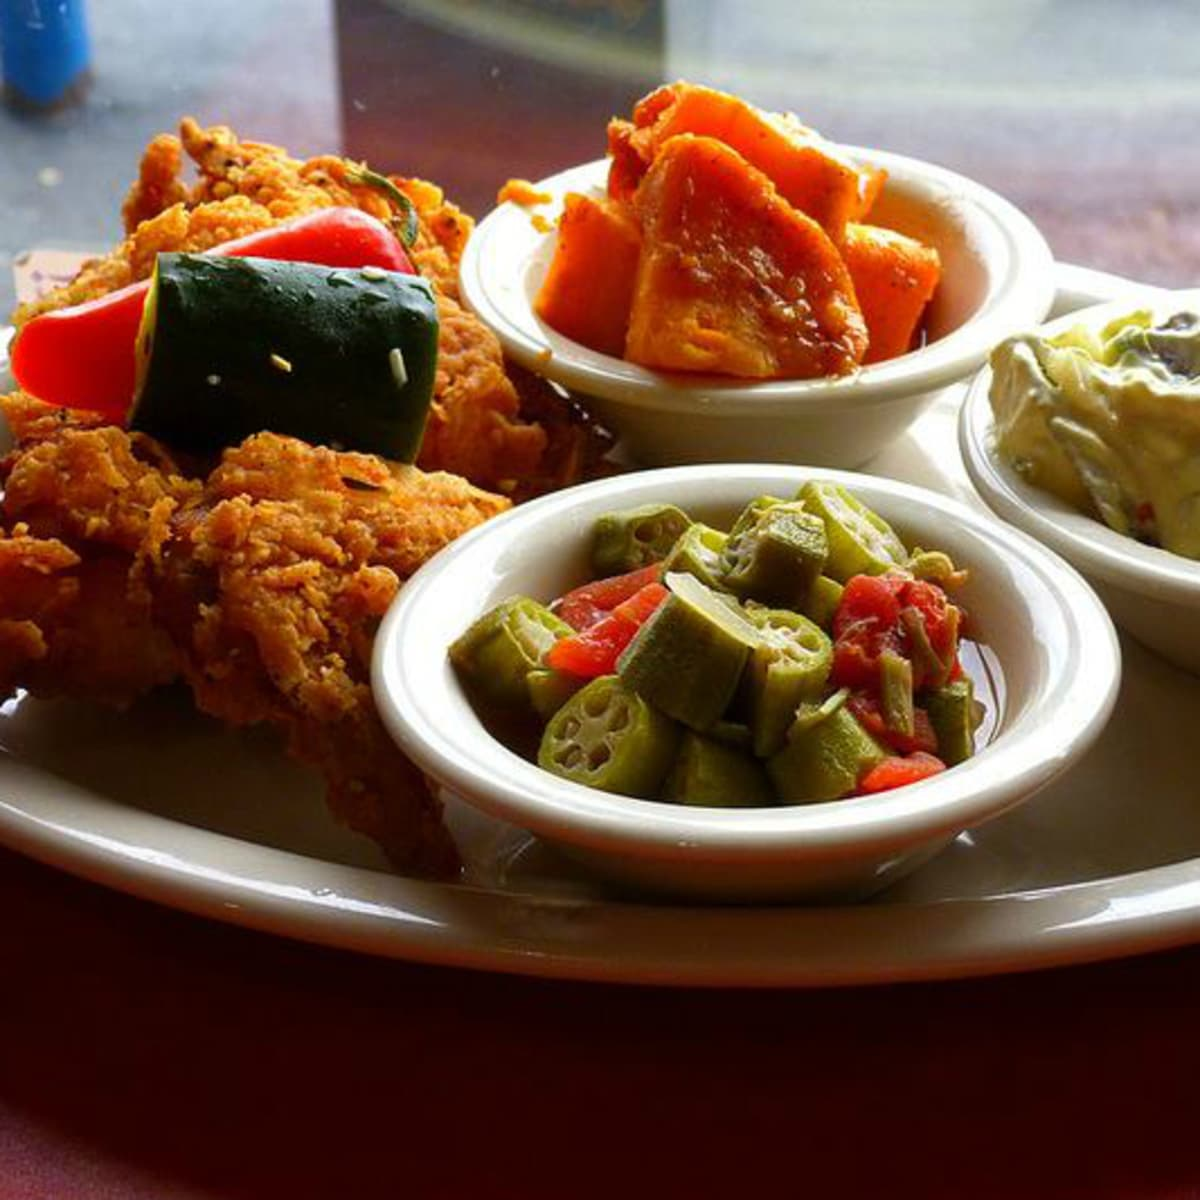 Hoover's Cooking Austin restaurant food plate 2015